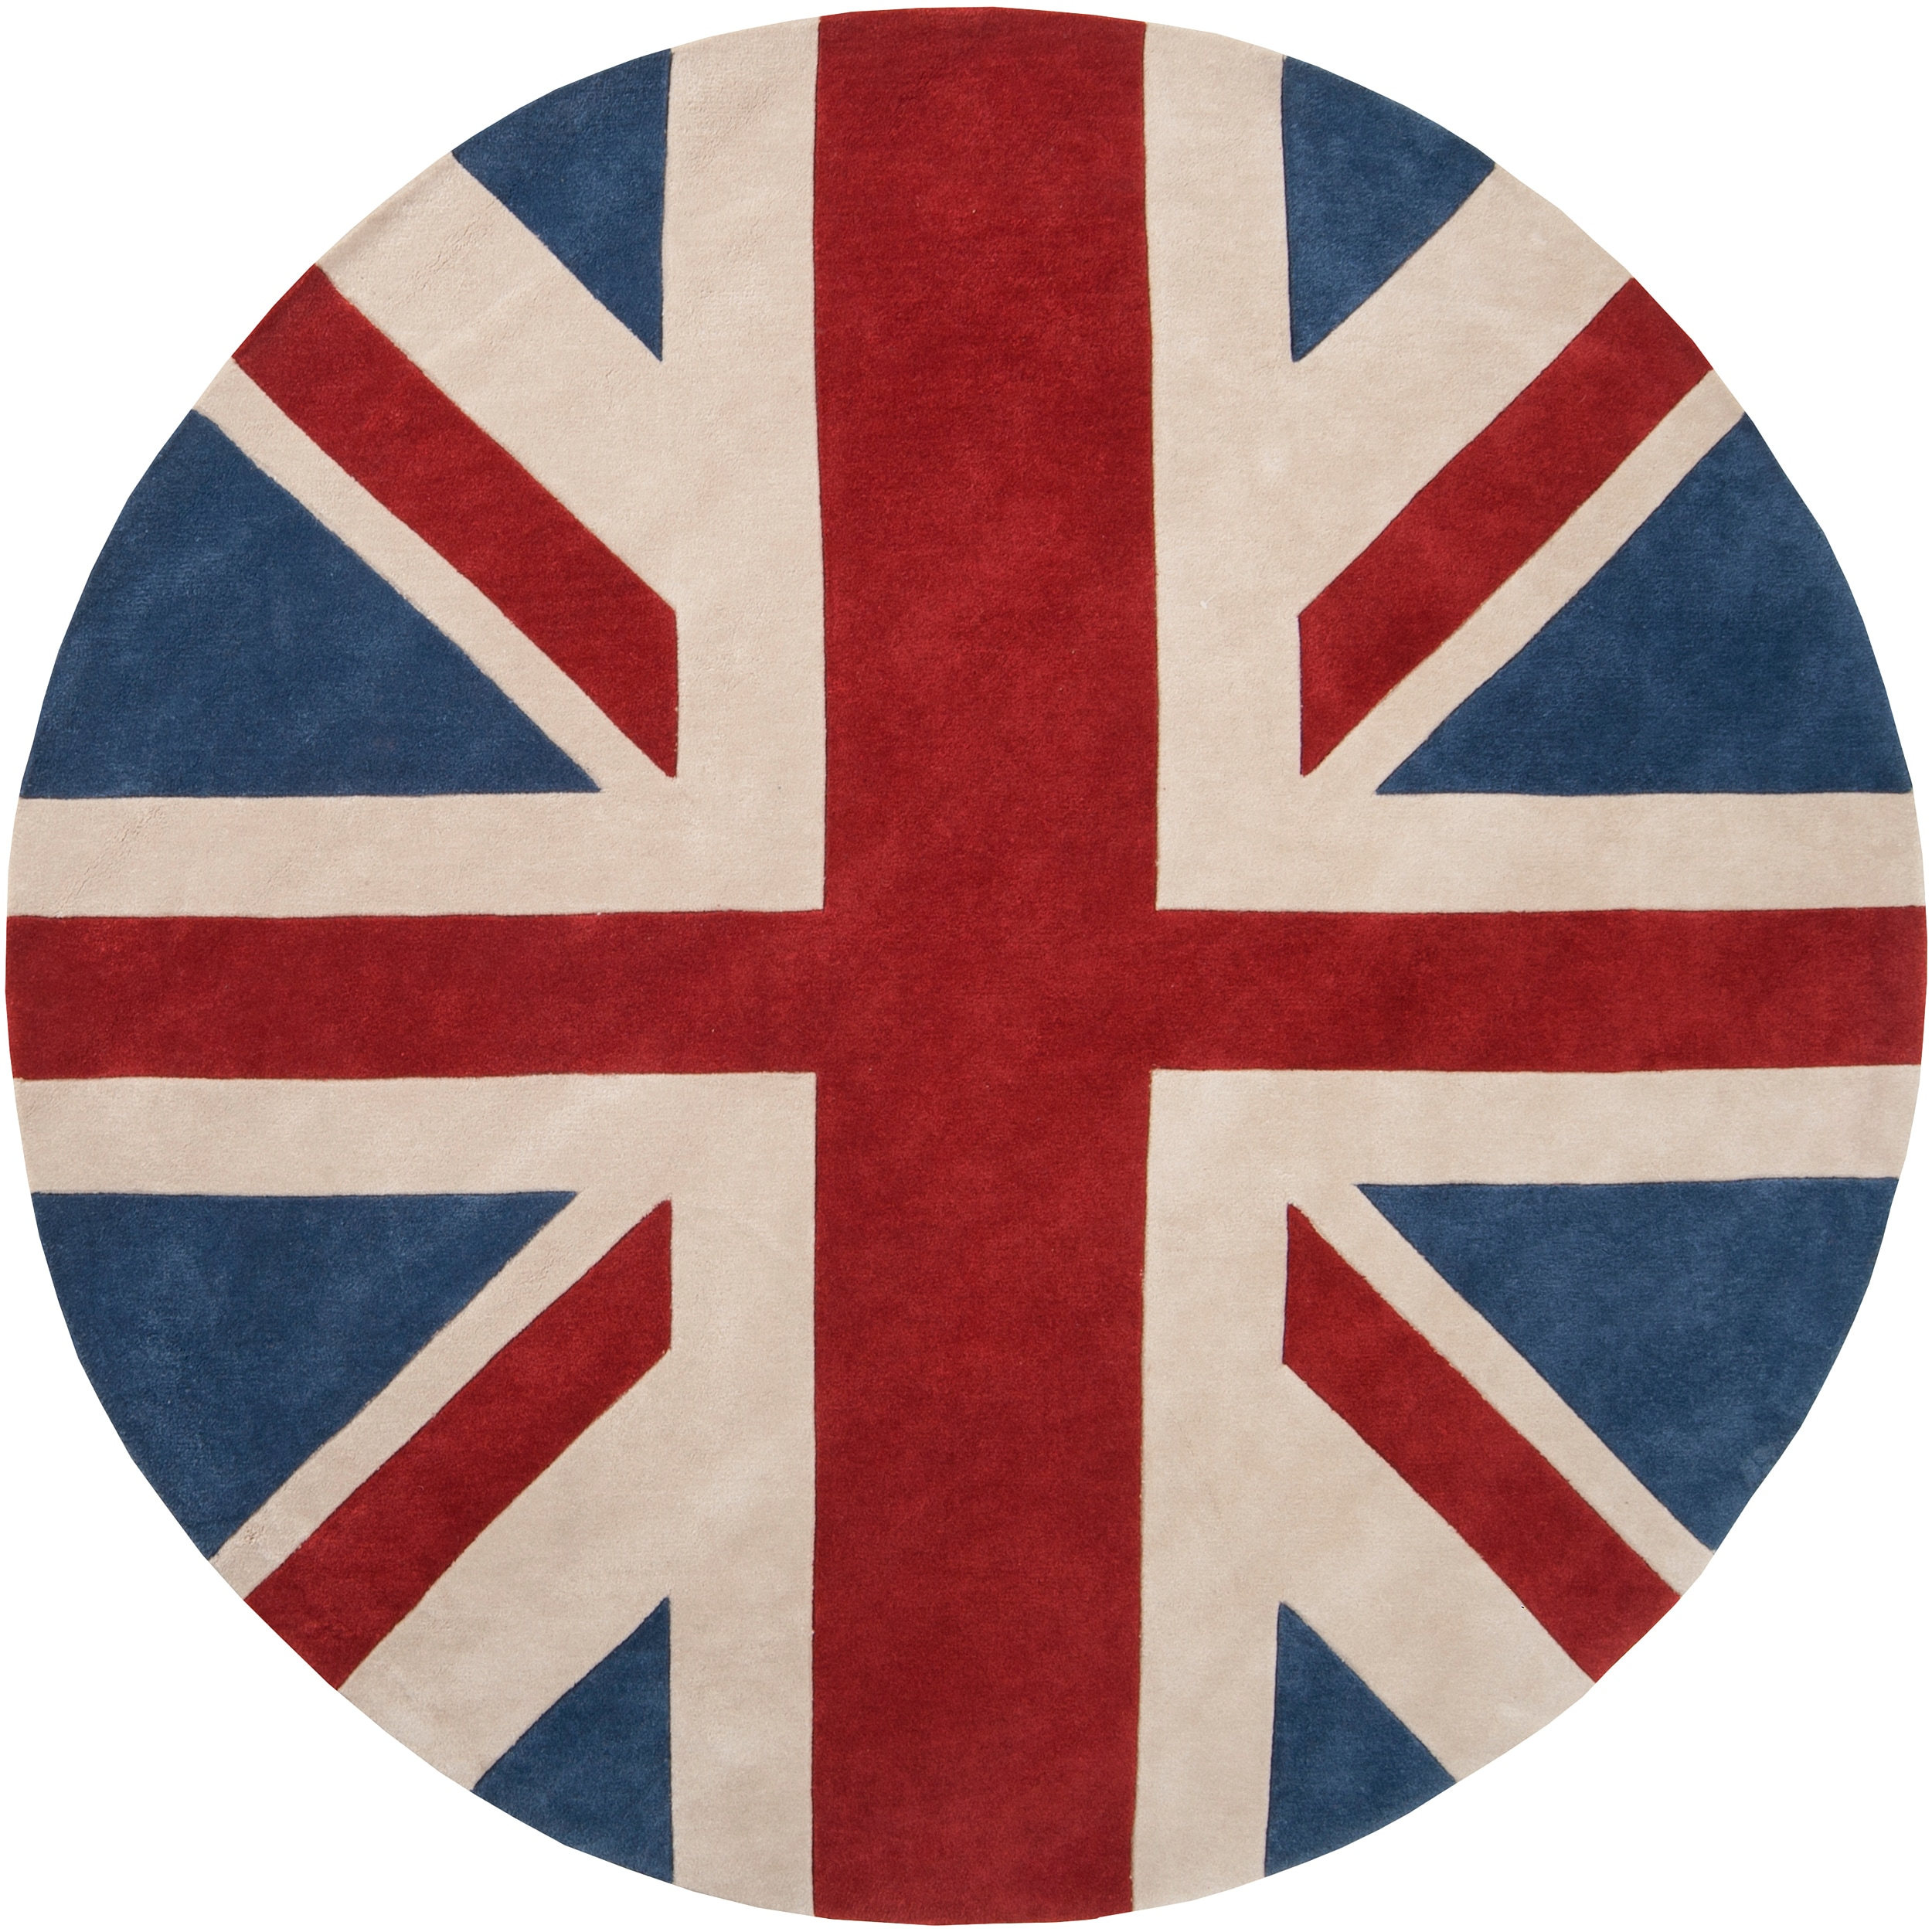 Hand-tufted Red Hillsborough East Union Jack Rug (8' Round